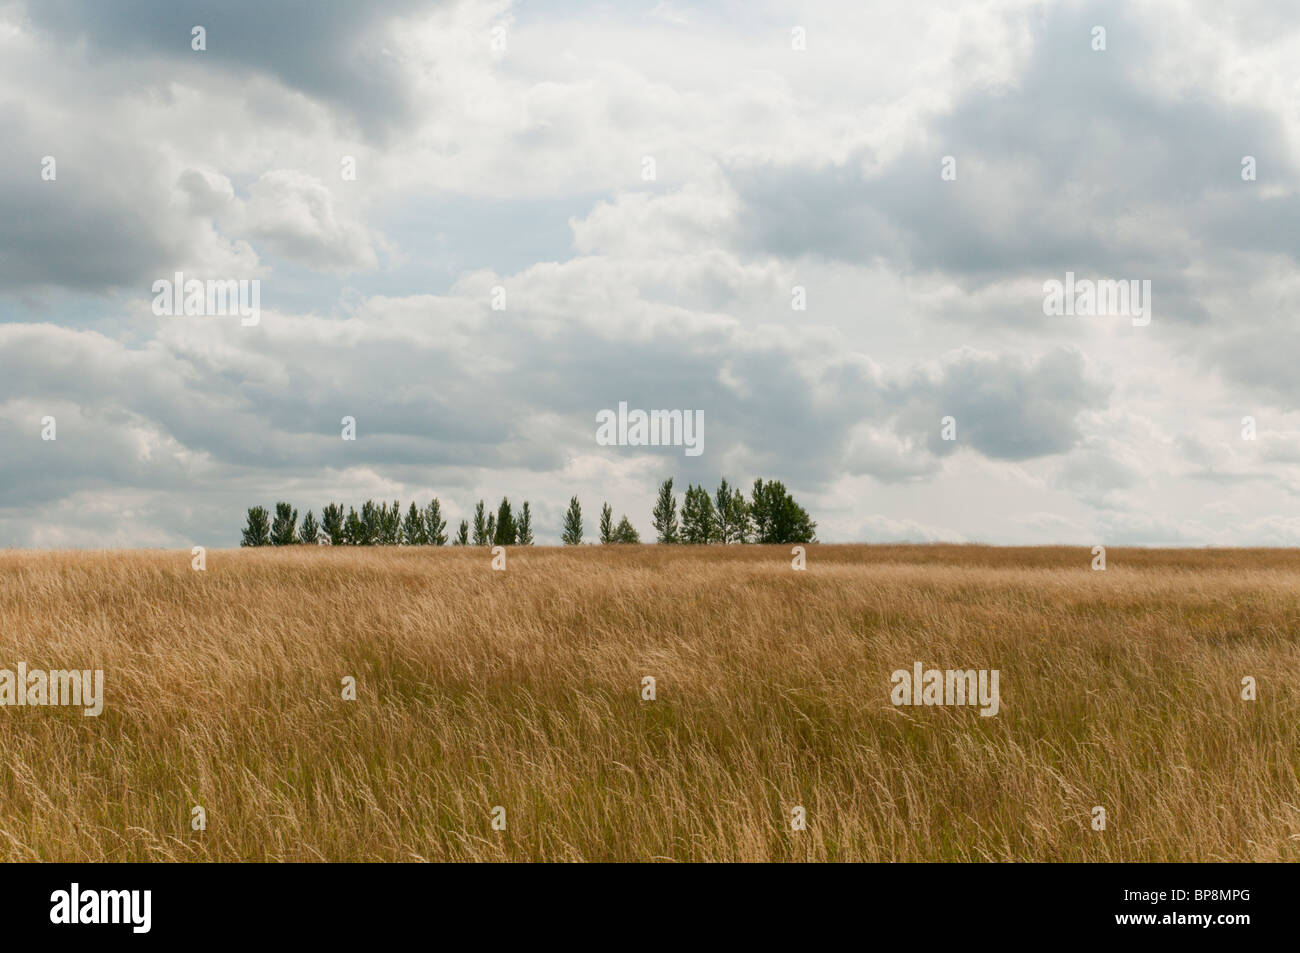 Hay field and trees in summertime. - Stock Image